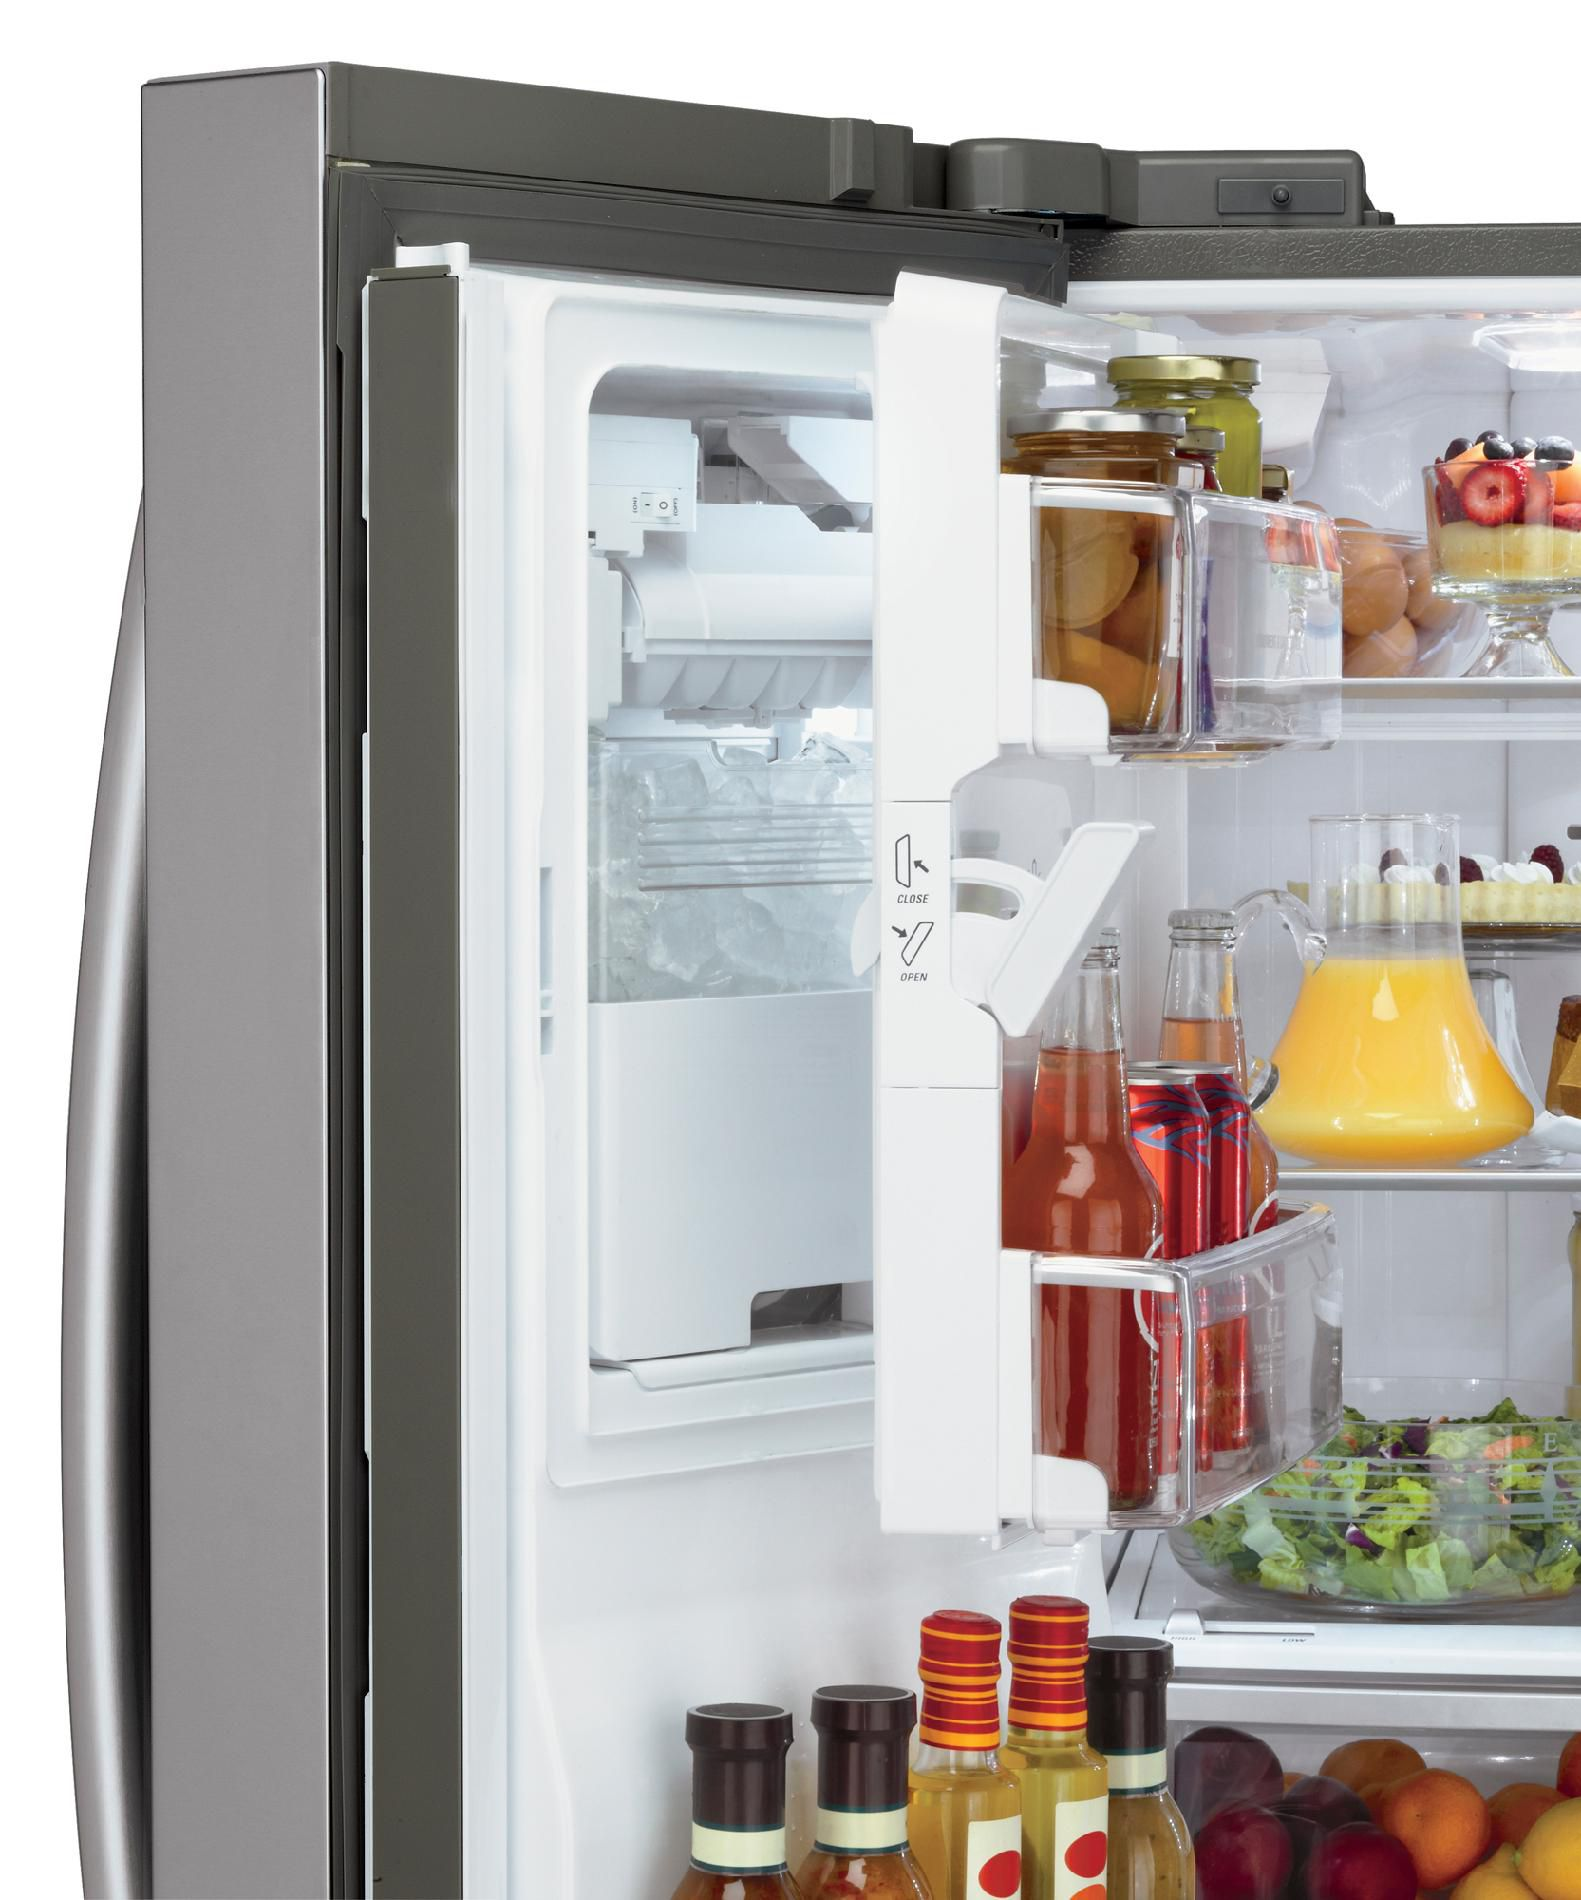 LG 31 cu. ft.  French Door Bottom-Freezer Refrigerator w/ Smart Cooling Technology - Stainless Steel